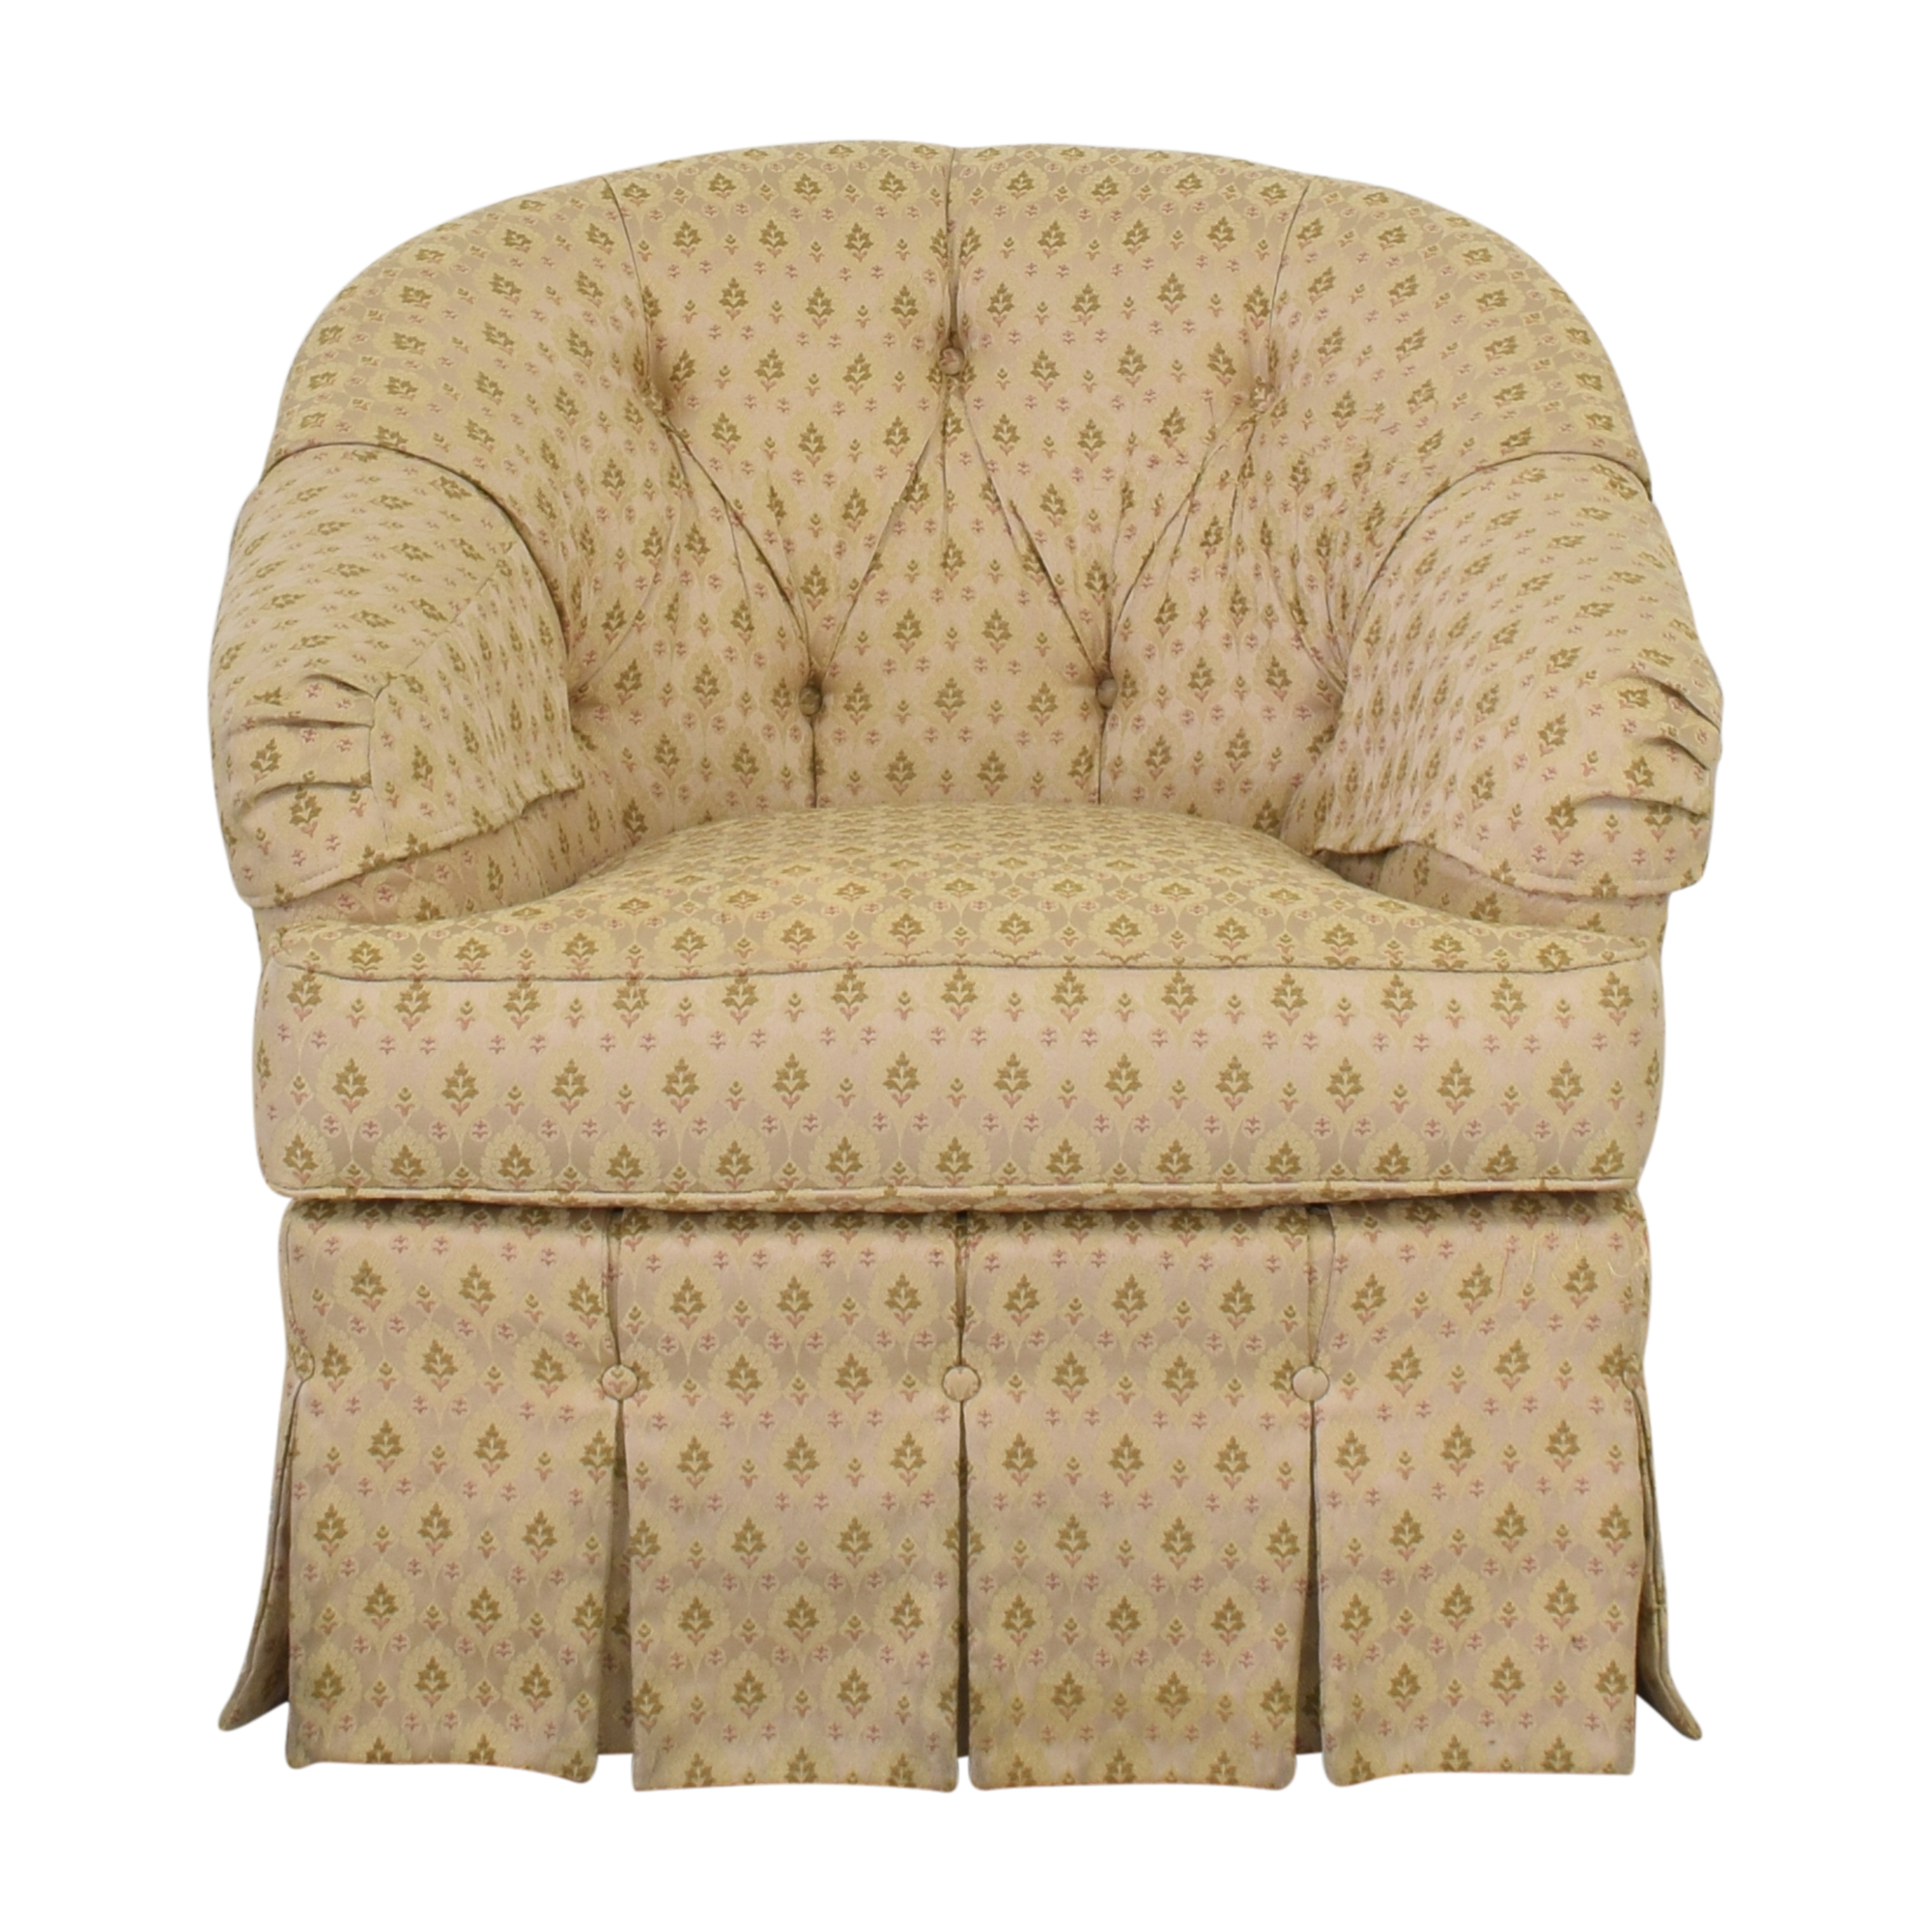 Ethan Allen Ethan Allen Skirted Swivel Chair second hand